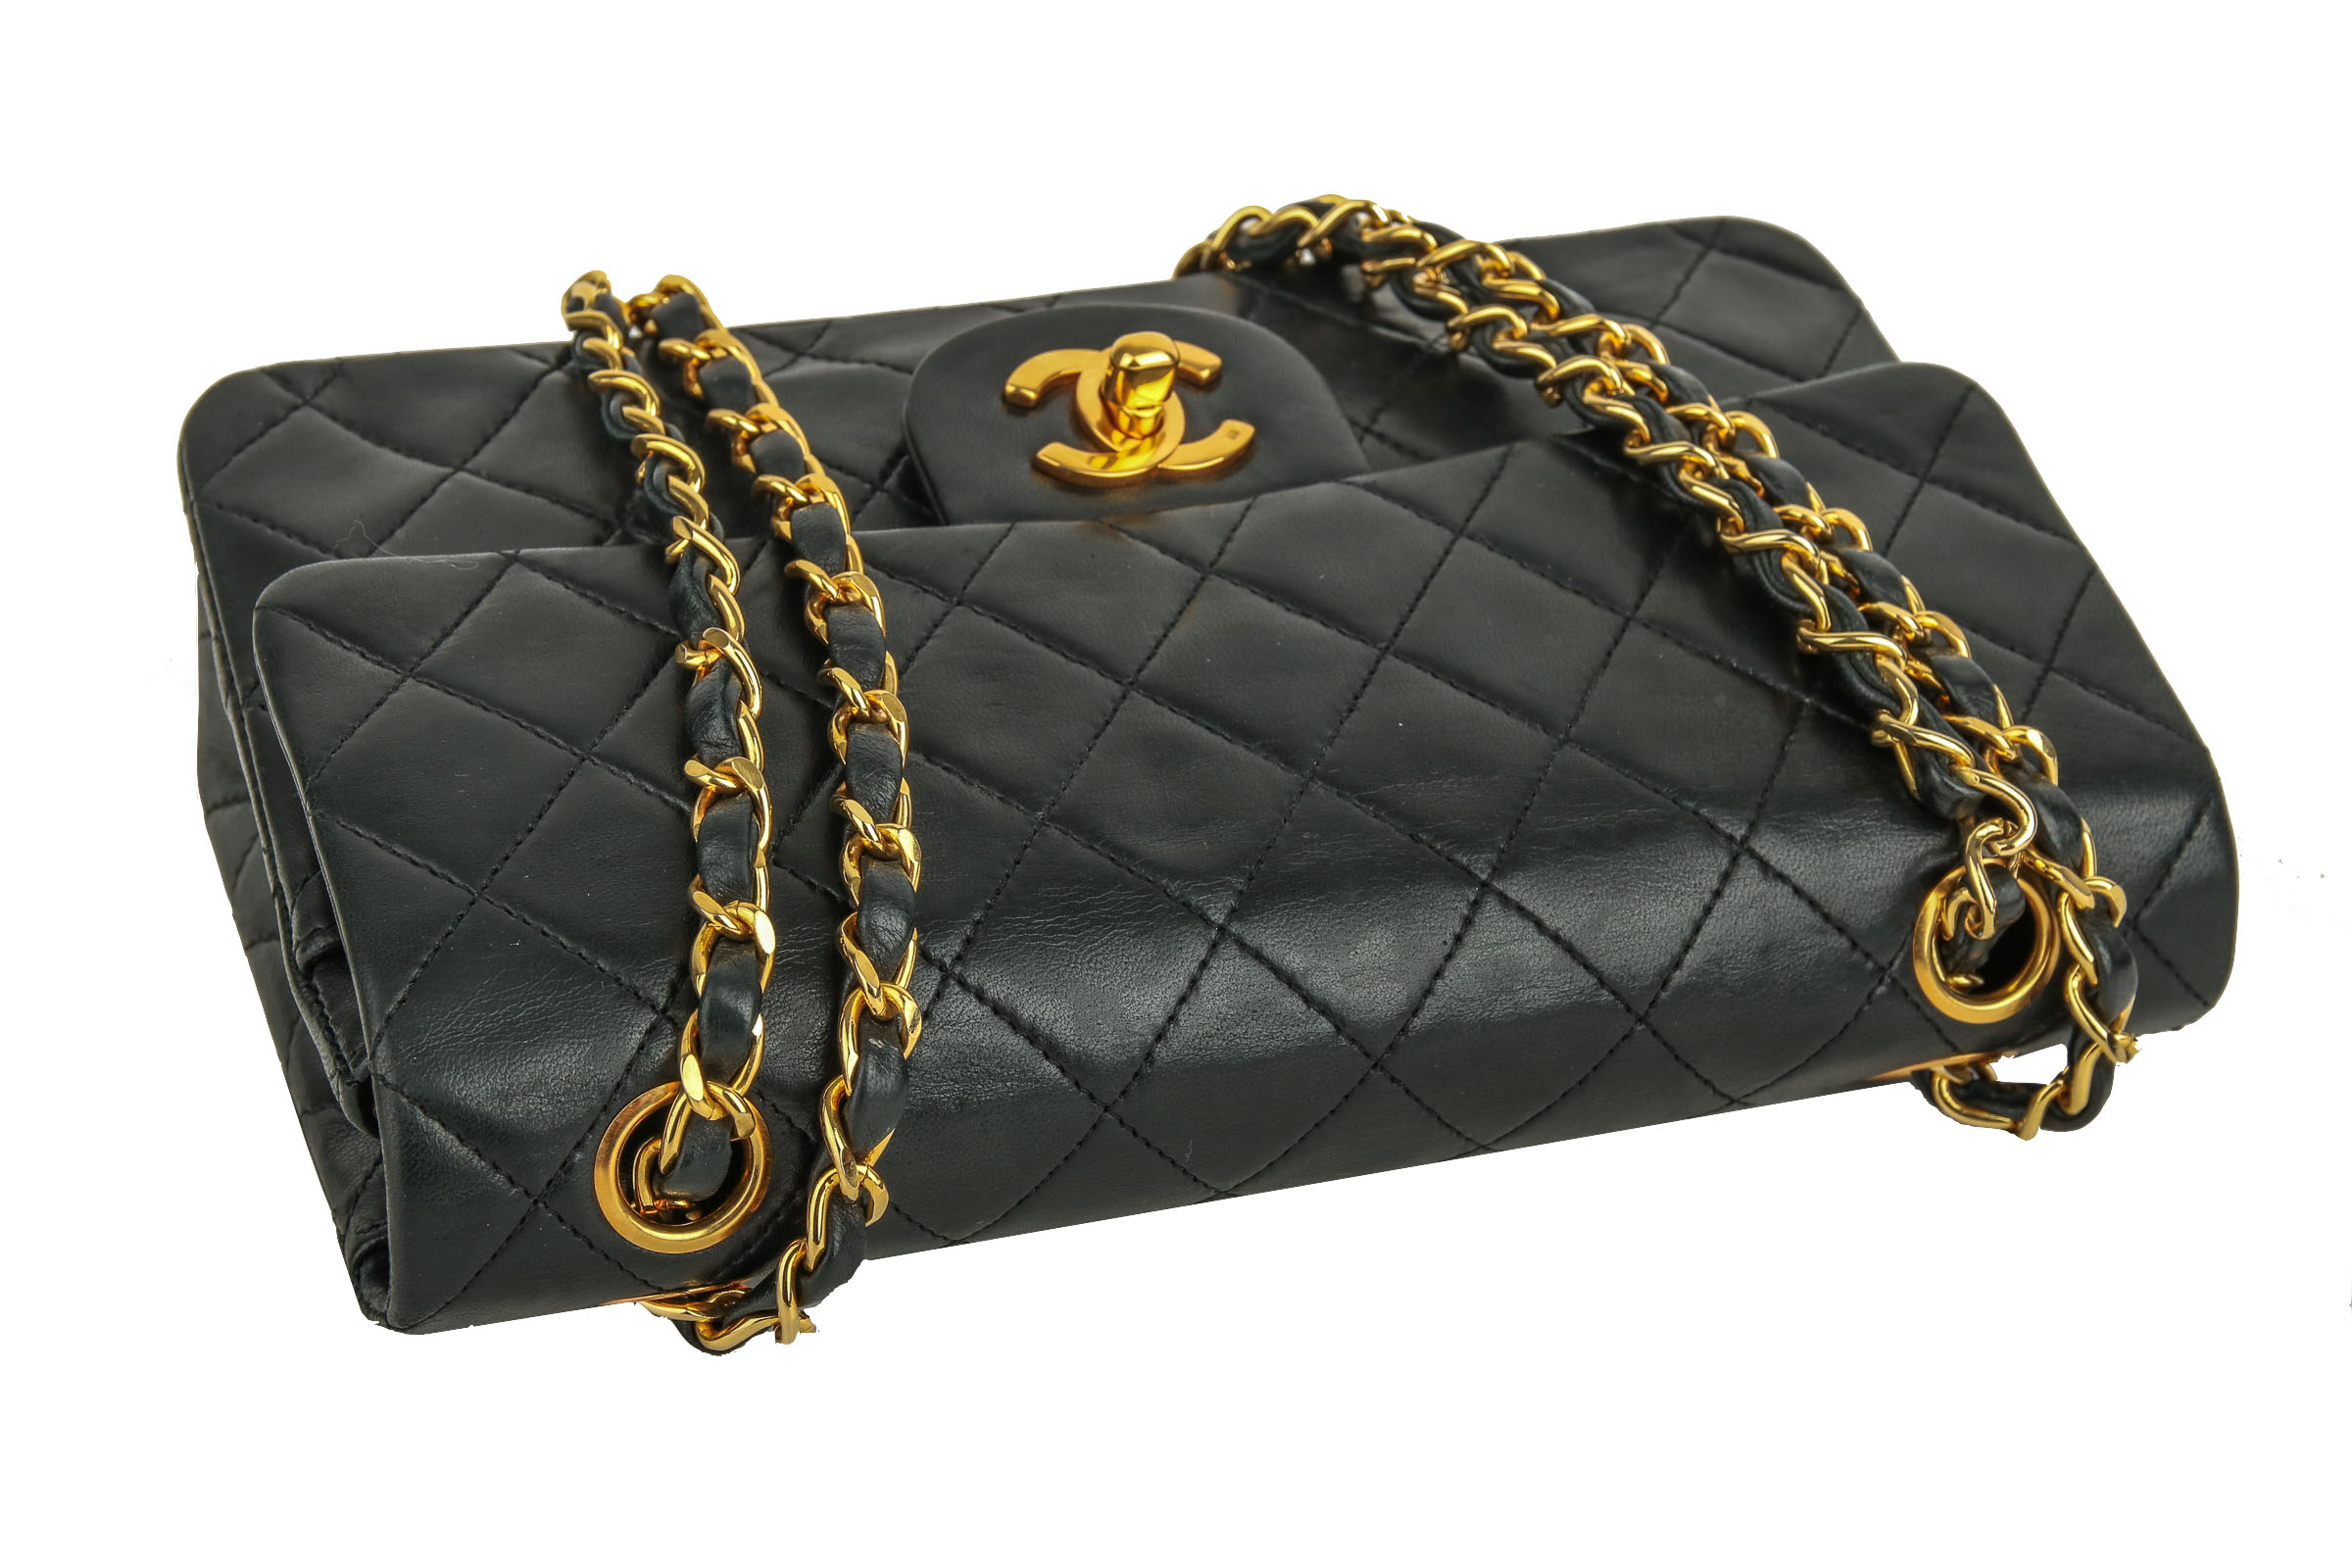 90612c48c0379 Preview  Chanel Timeless Classic Flap Small Schwarz. Preview  Chanel  Timeless Classic Flap Small Schwarz